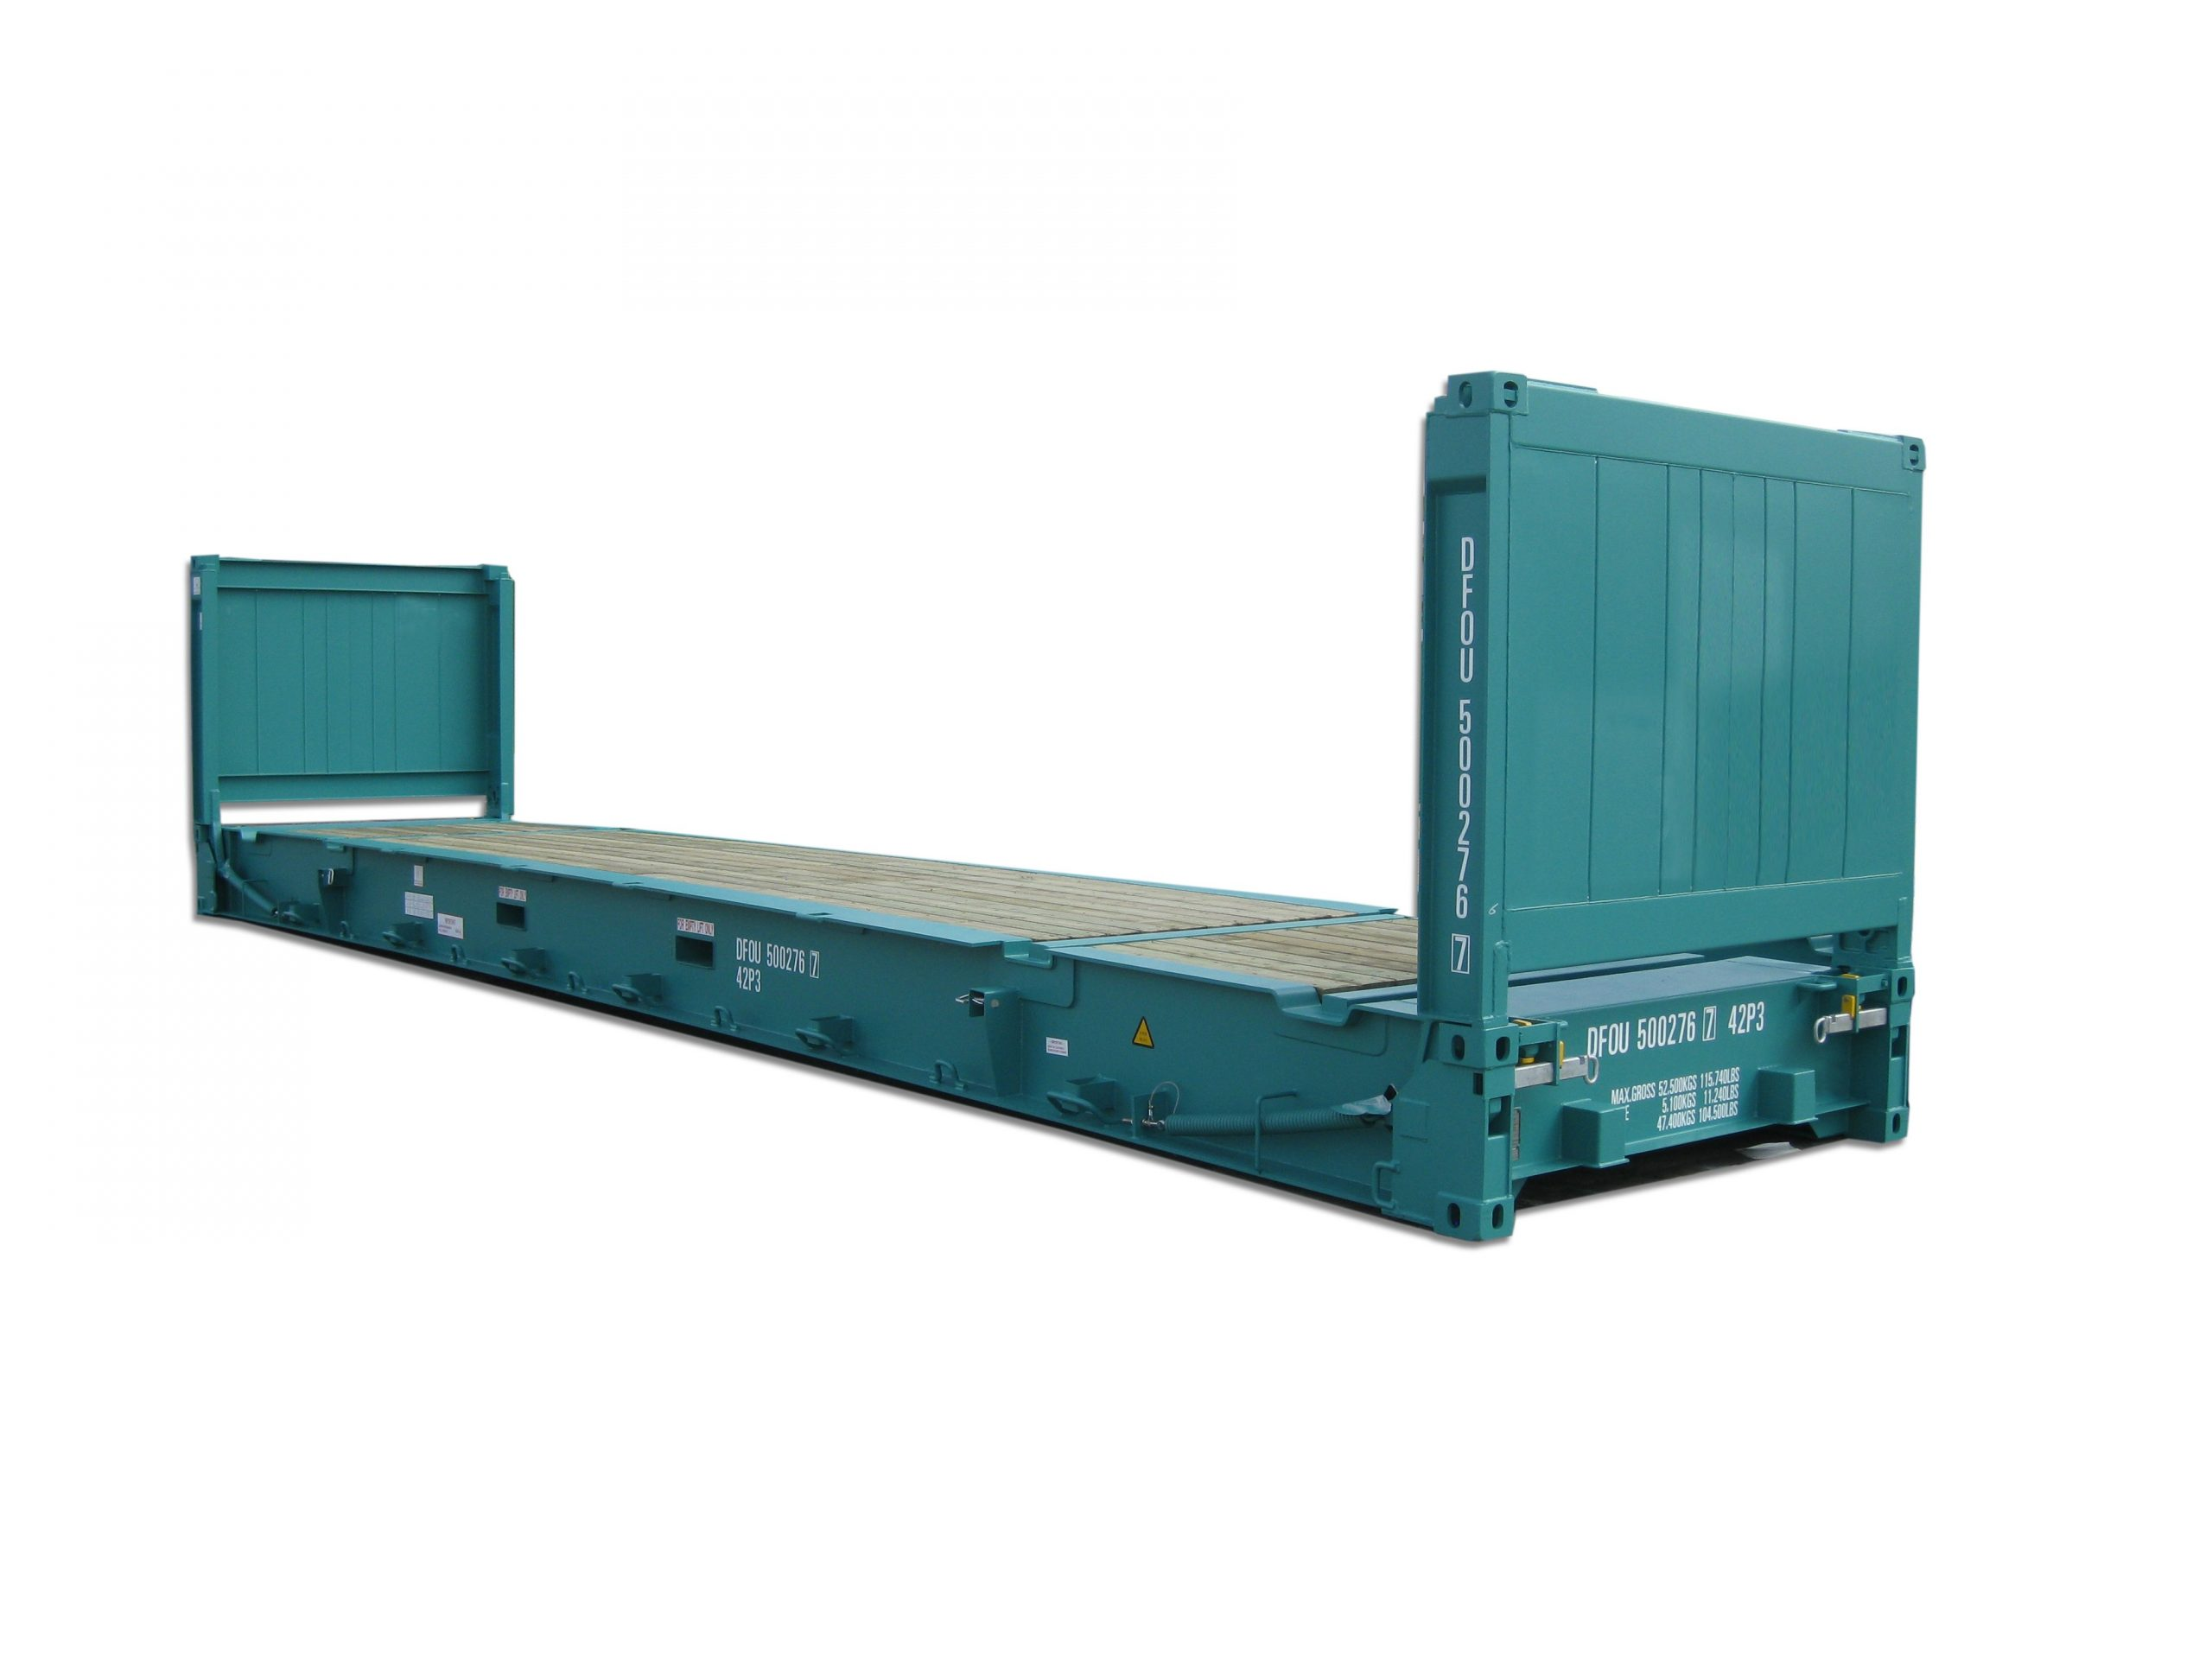 open transi flat flat rack shipping container